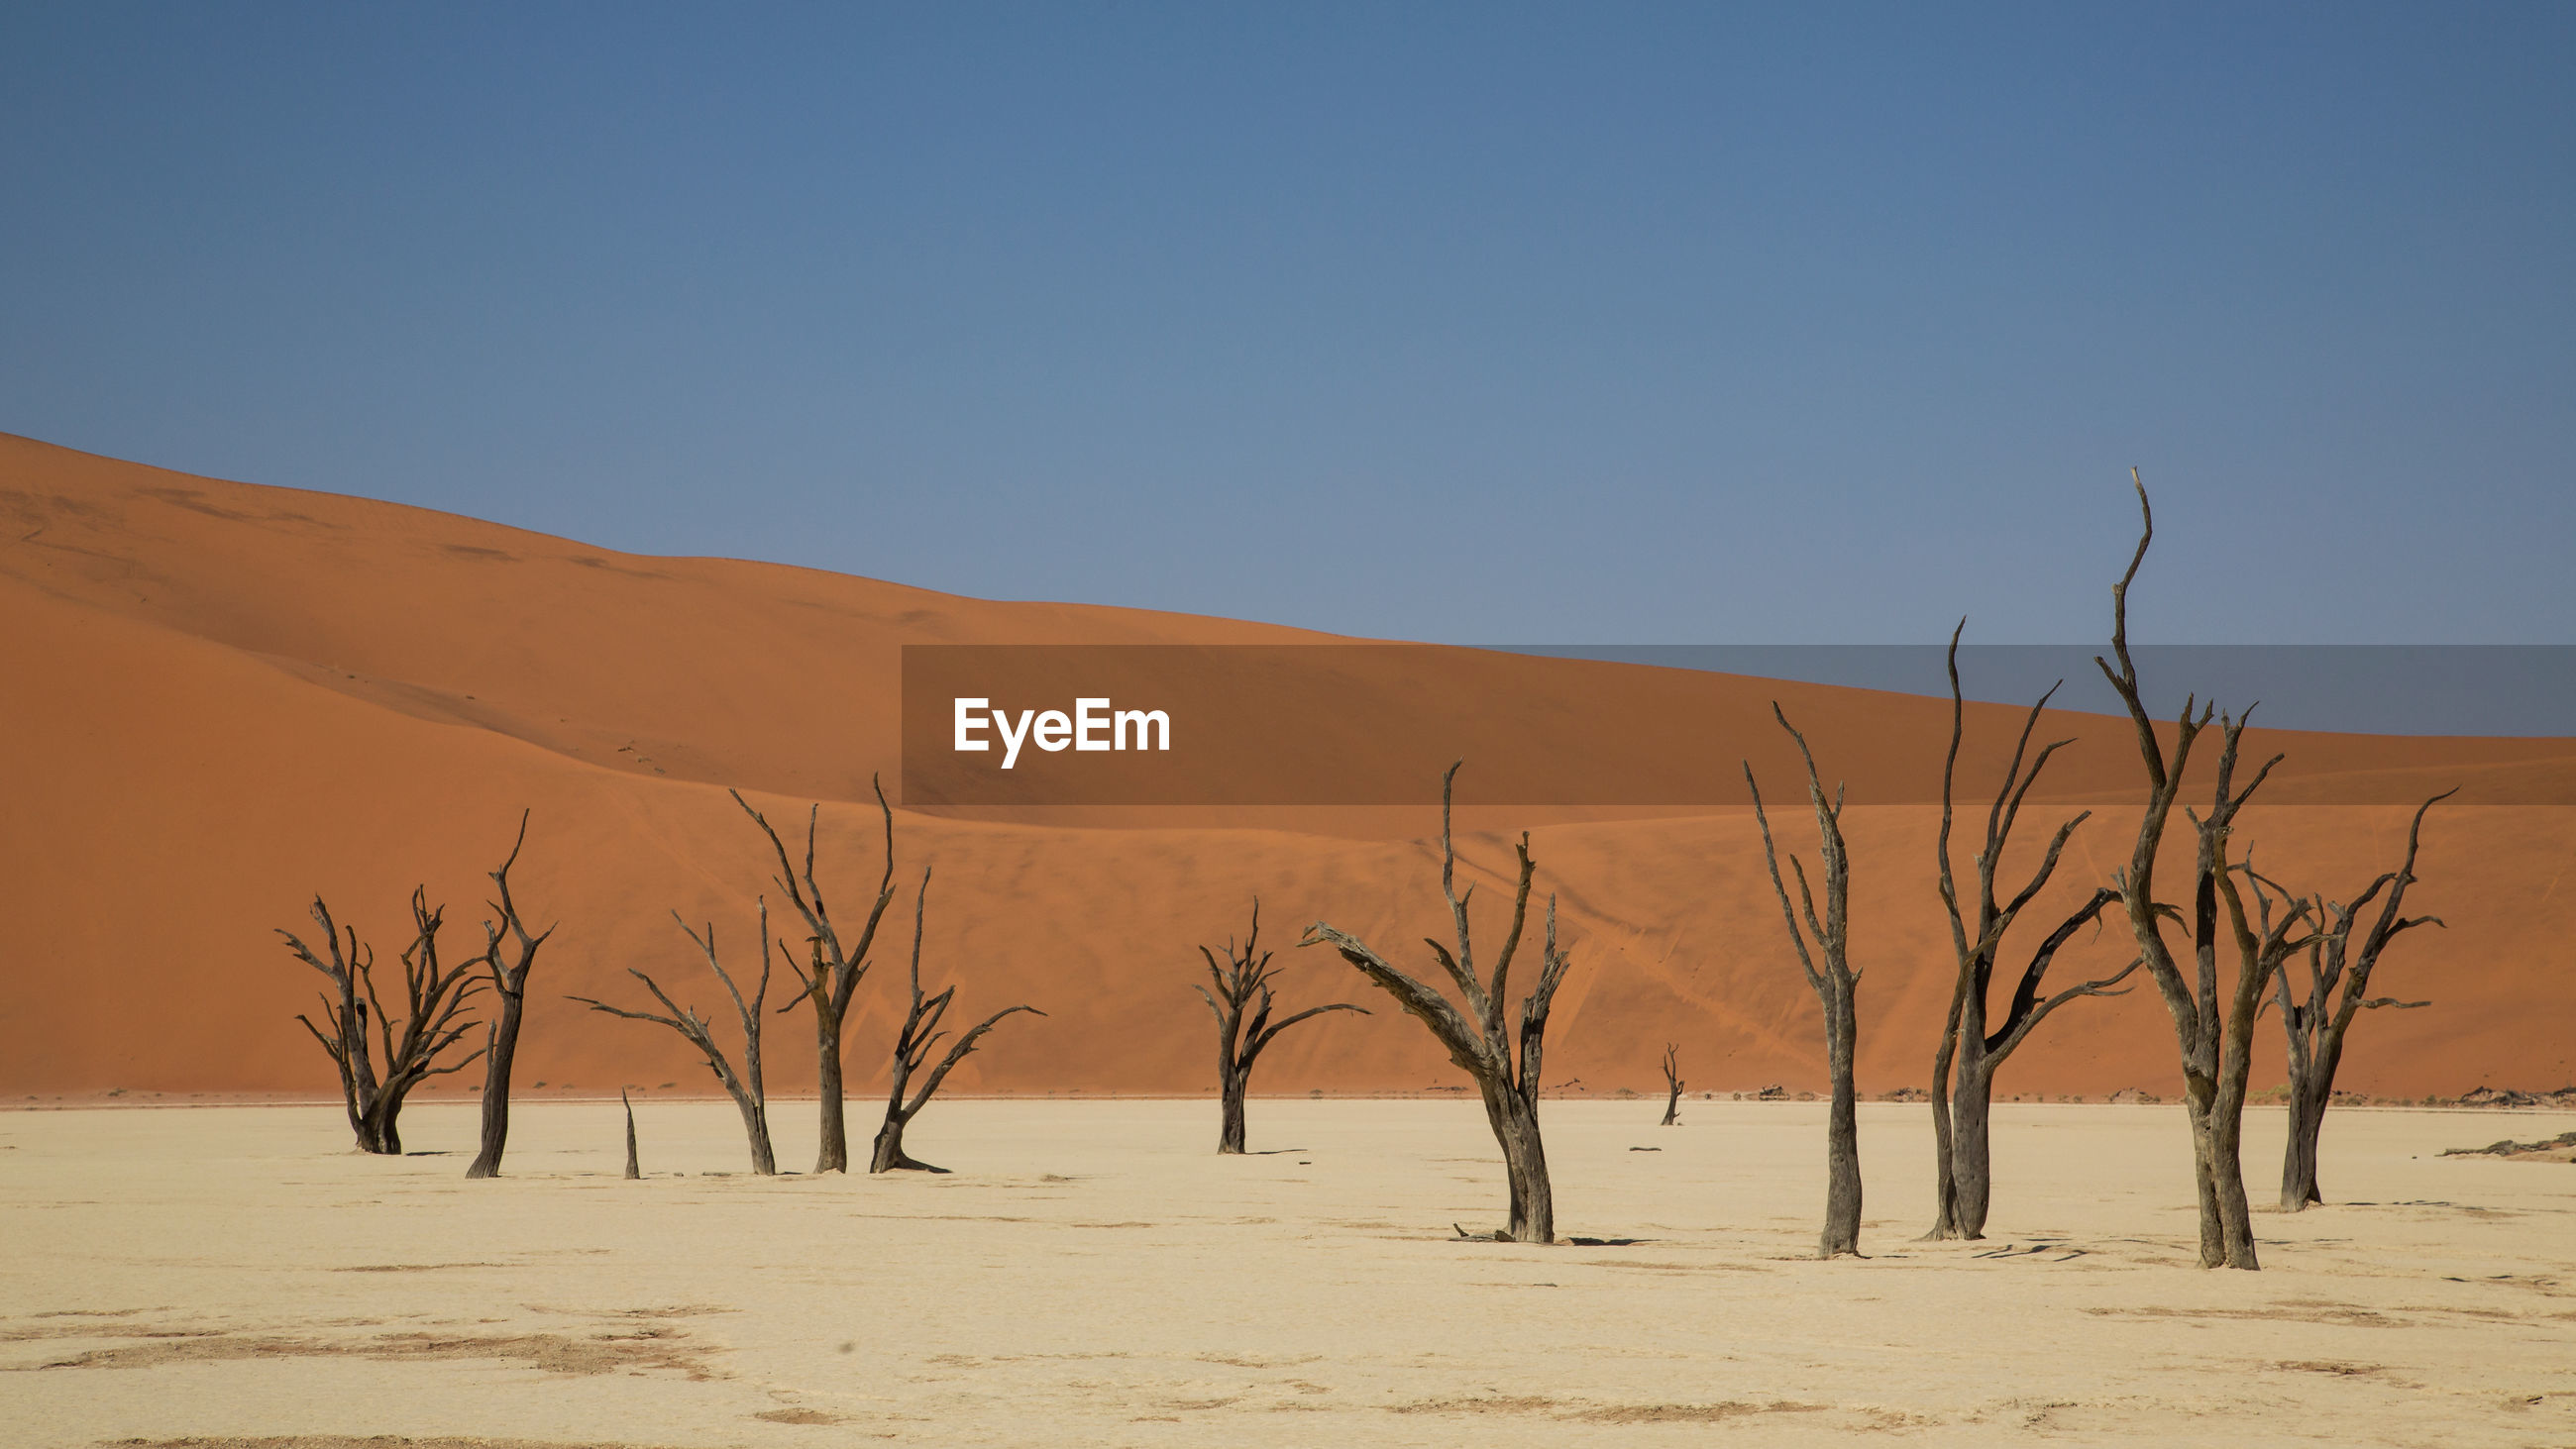 BARE TREES ON SAND DUNE AGAINST CLEAR SKY